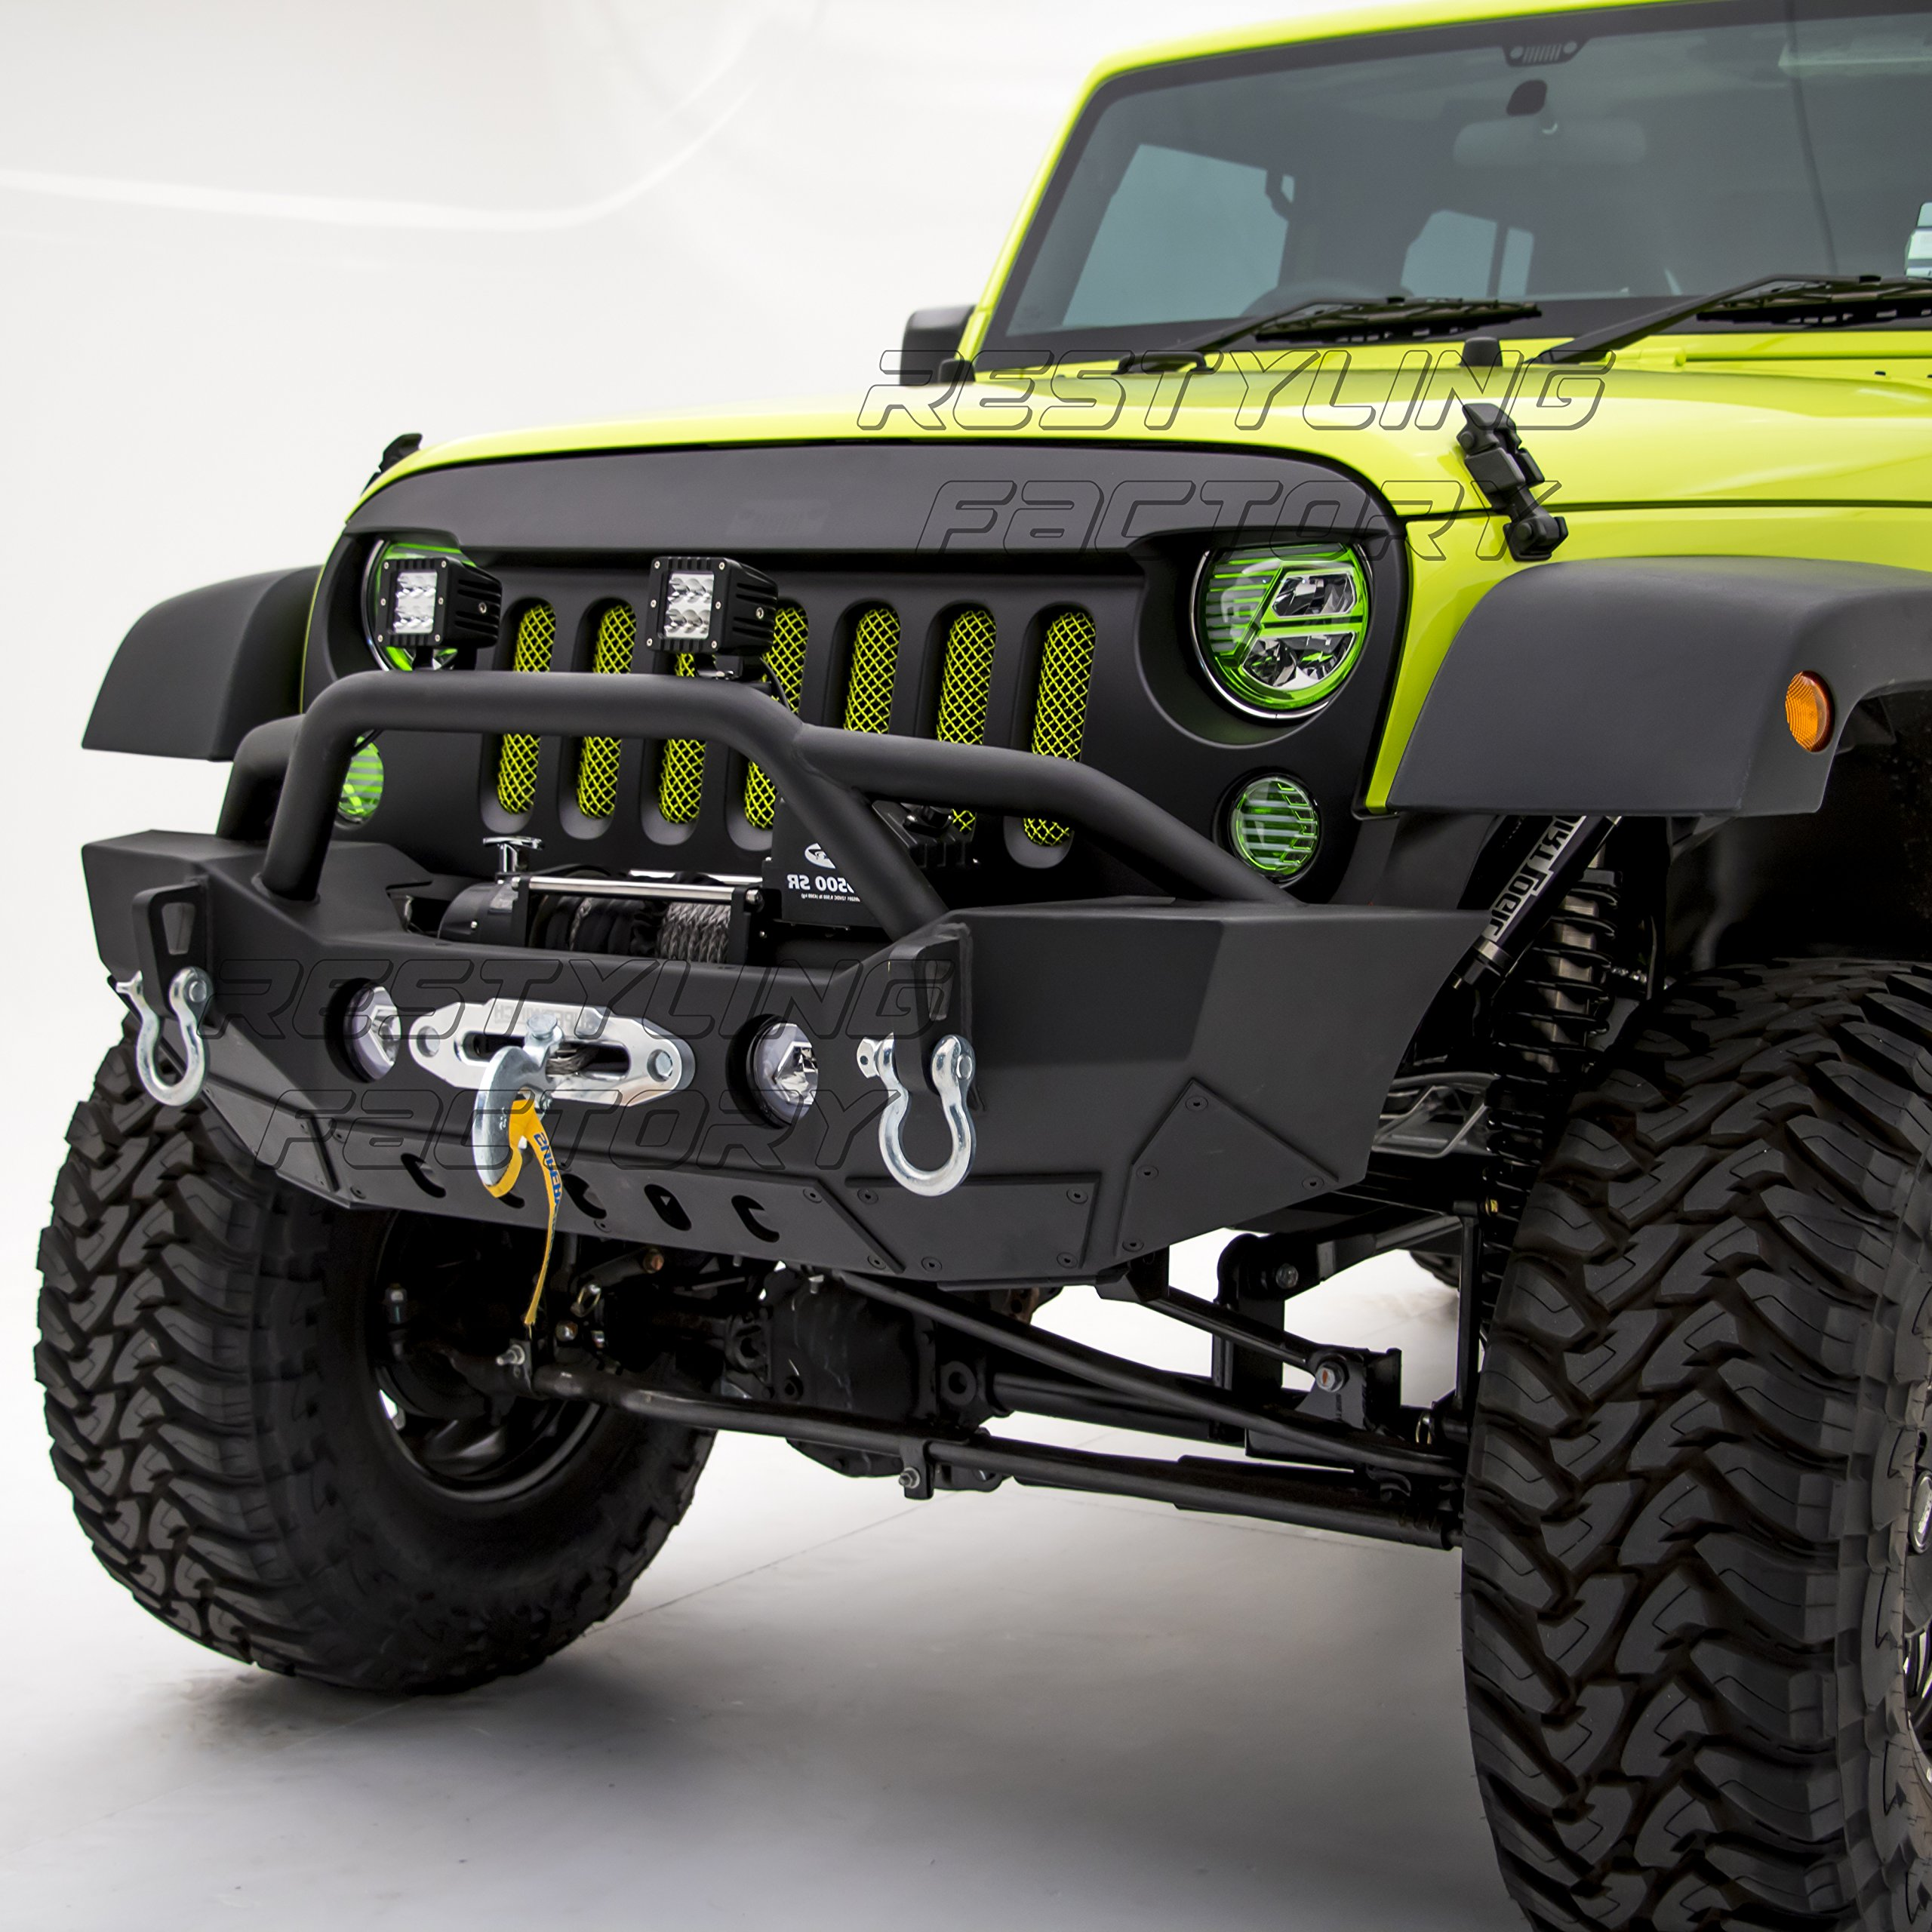 2013 jeep wrangler front bumper with winch amazon com Jeep Wrangler Jk Winch Bumpers